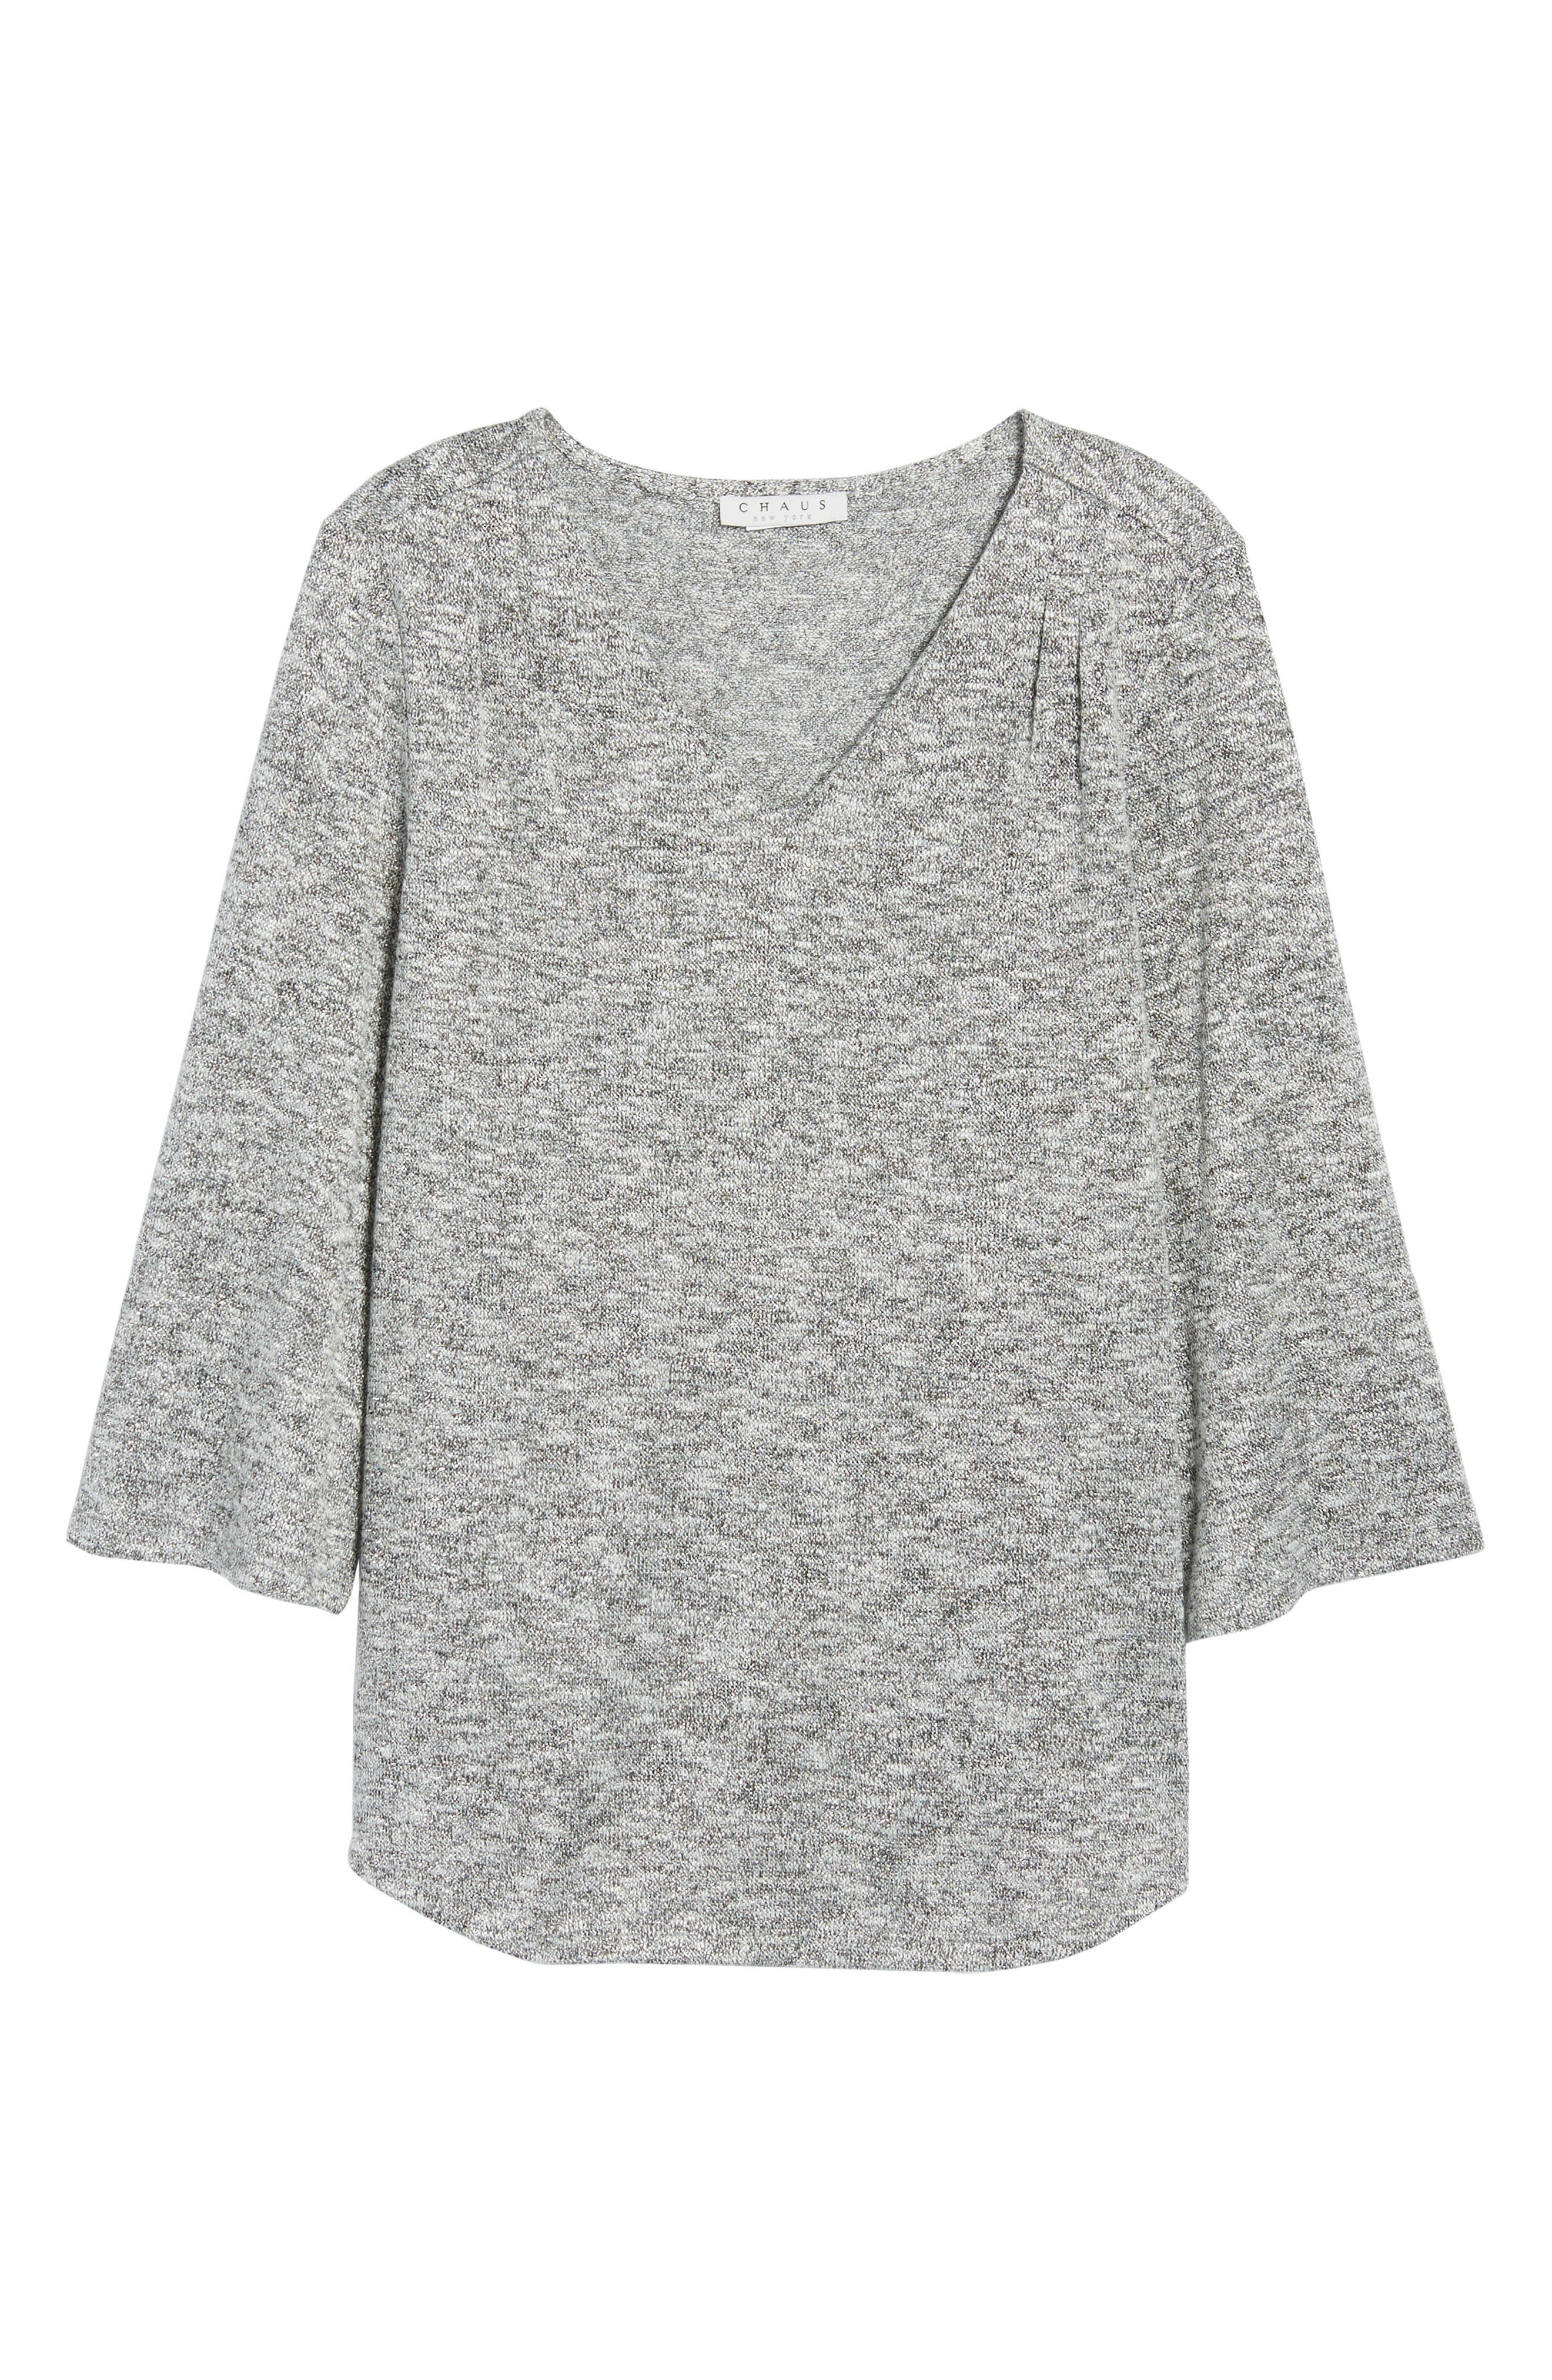 Sparkle Heathered V-Neck Top,                             Alternate thumbnail 6, color,                             050-Grey Heather